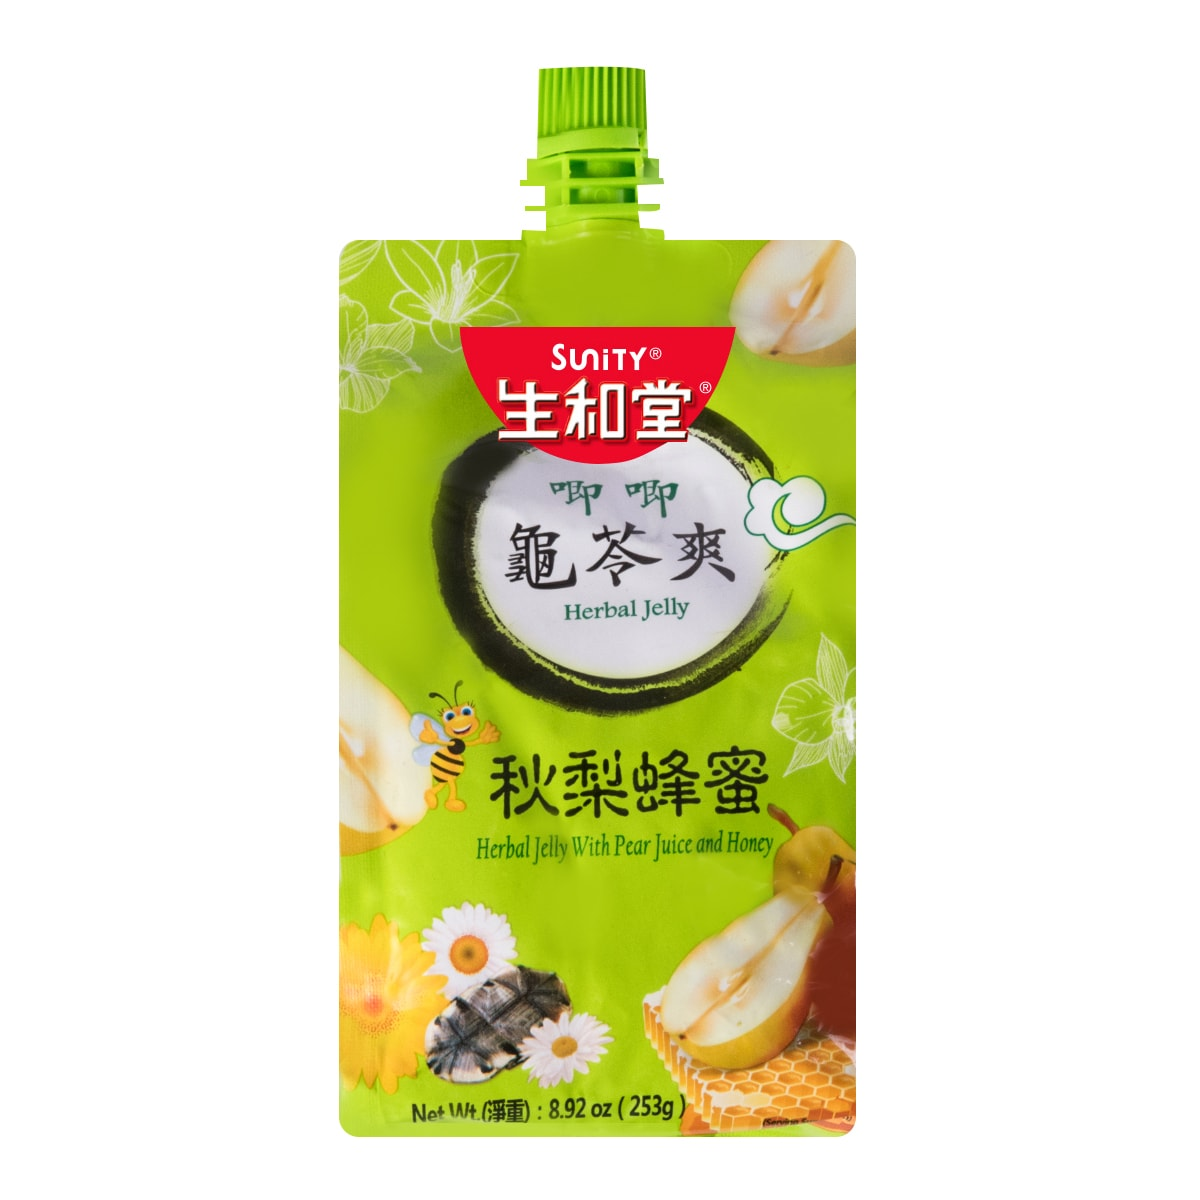 SUNITY Herbal Jelly with Pear Juice and Honey 253g